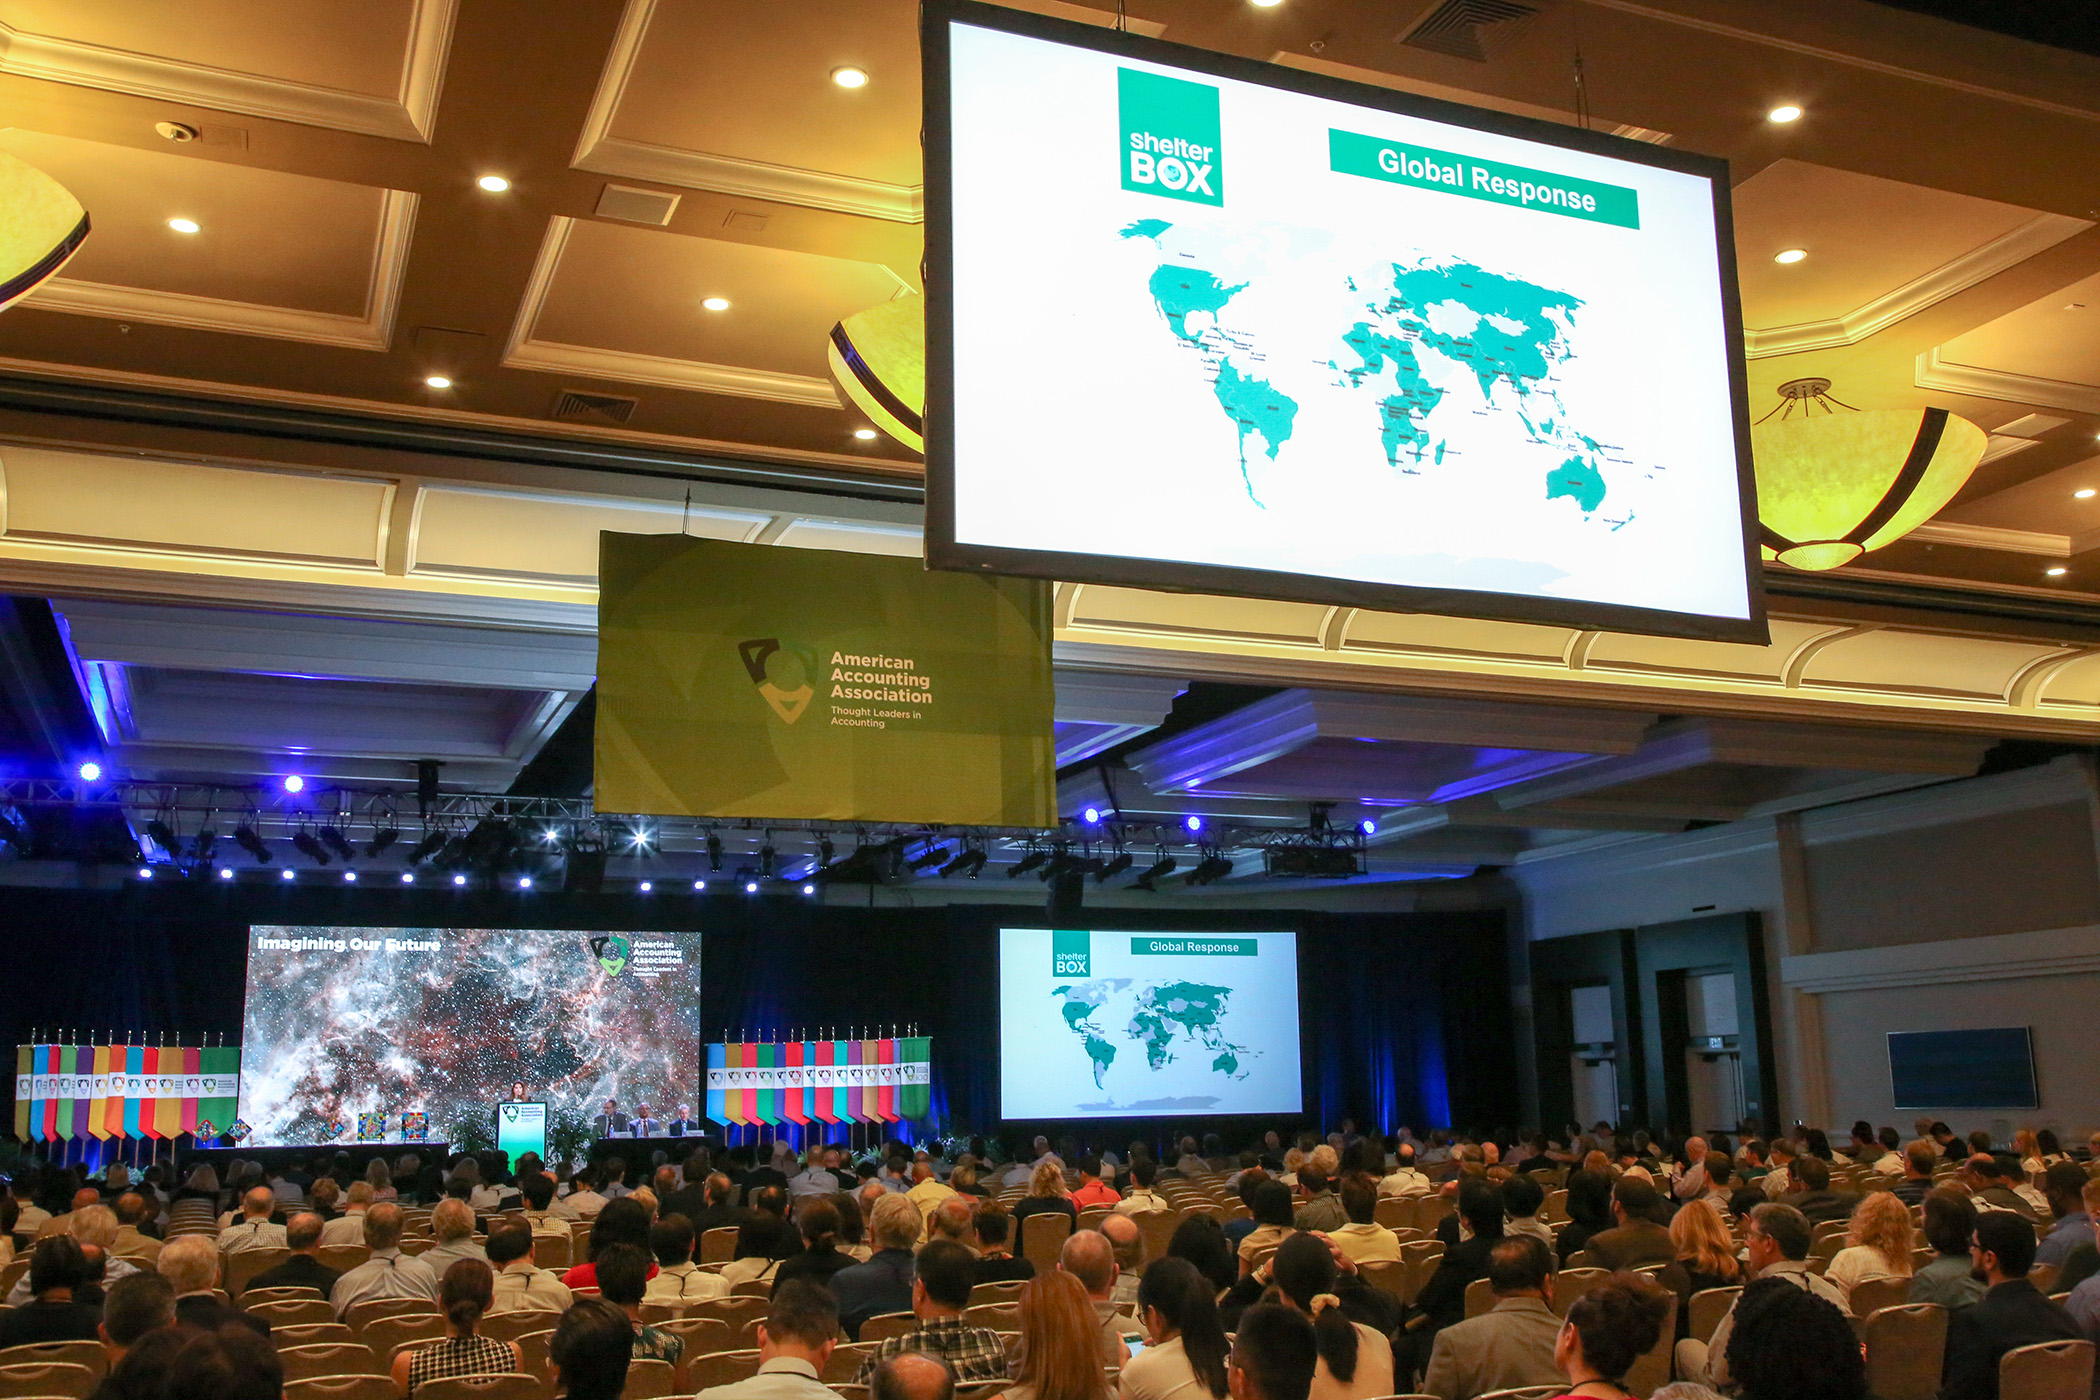 ShelterBox coverage map being shown during the keynote